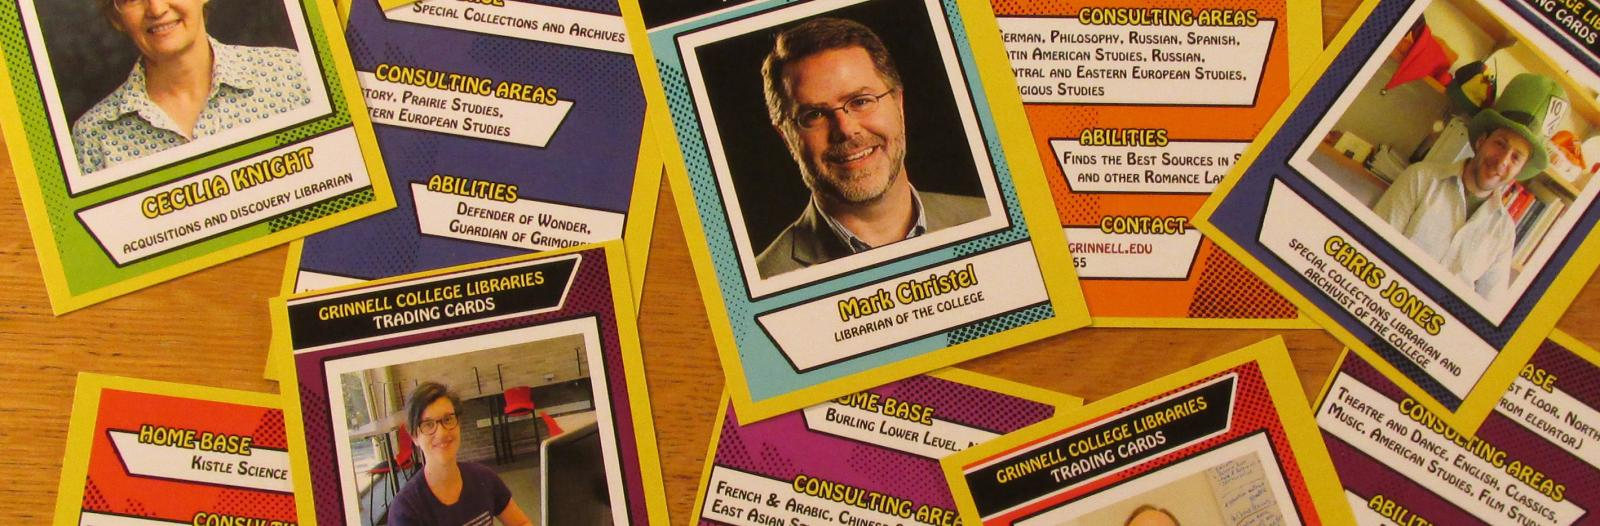 Librarian trading cards featuring Cecilia Knight, Mark Christel, Chris Jones, Liz Rodrigues, and Keven Engel